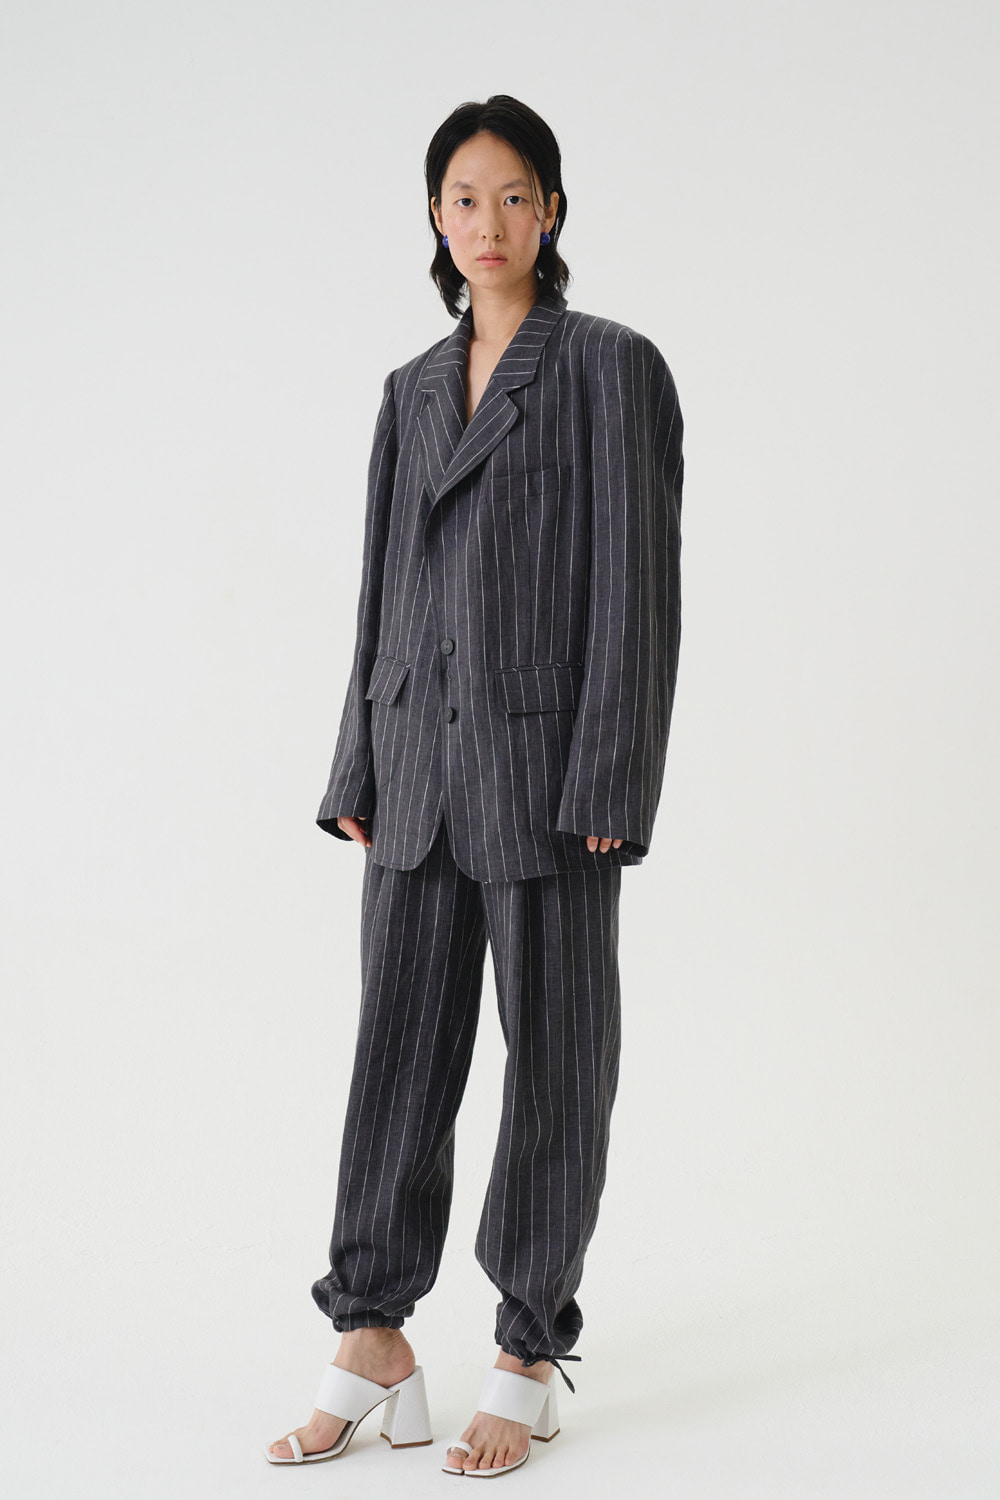 Pants Stripe Linen Charcoal Gray